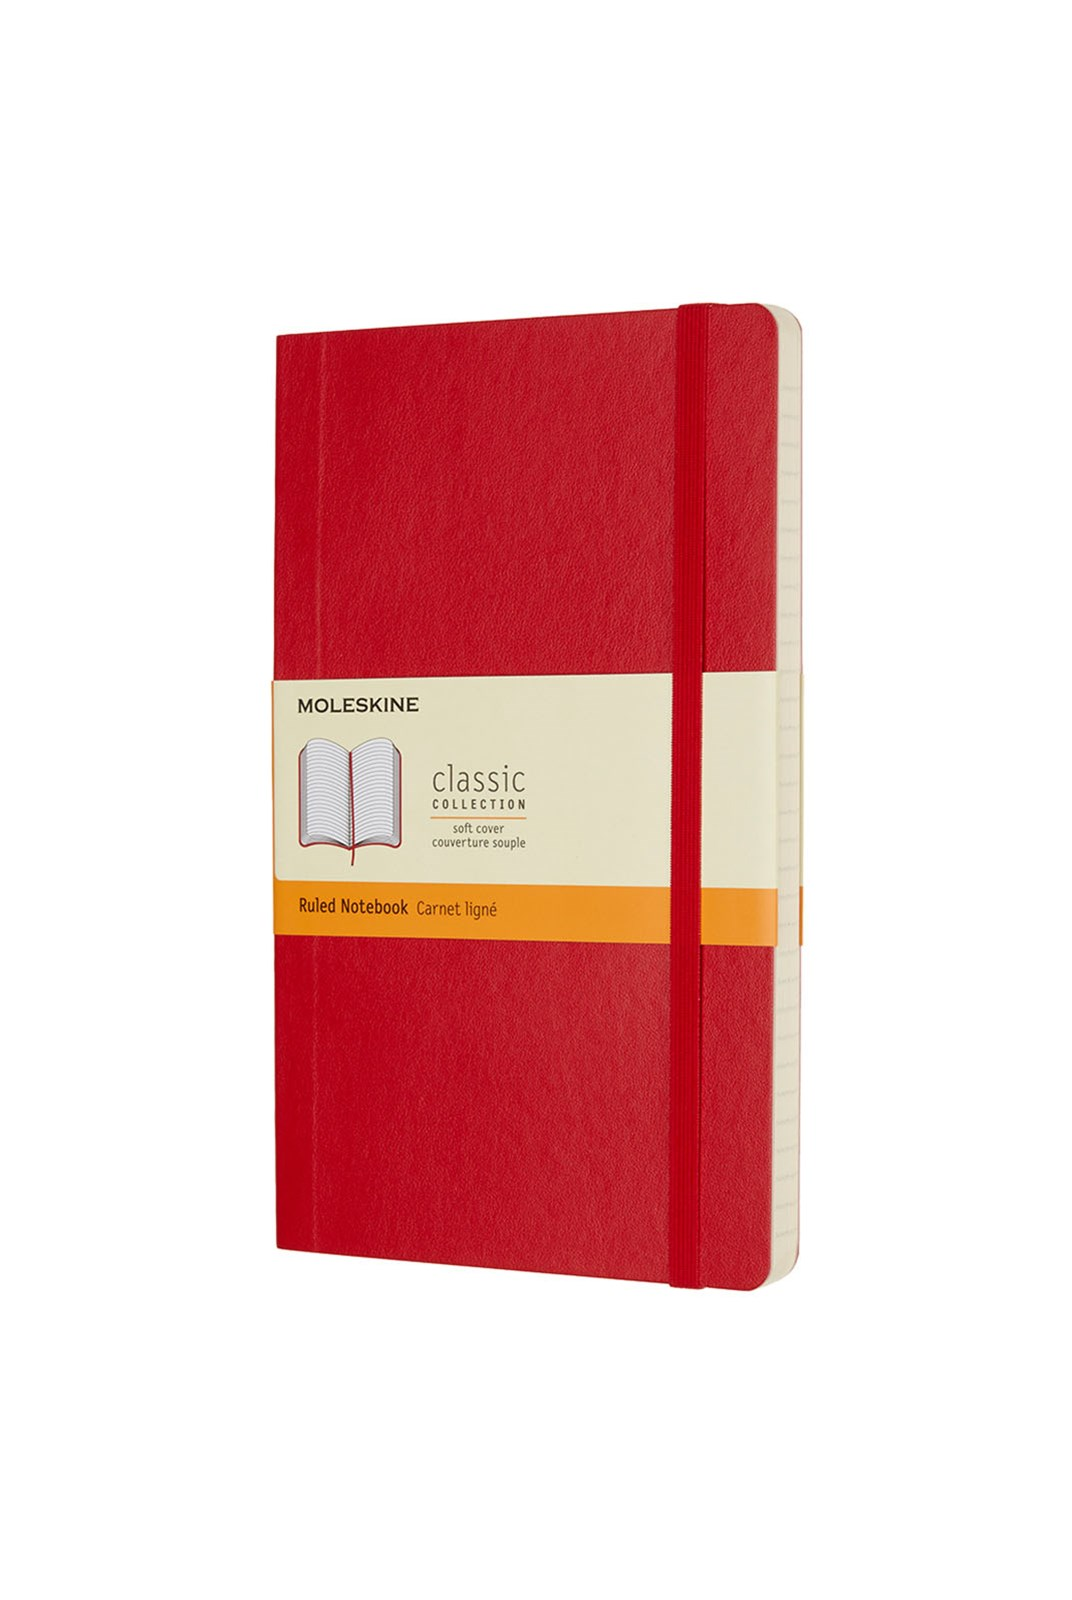 Moleskine - Classic Soft Cover Notebook - Ruled - Large - Scarlet Red